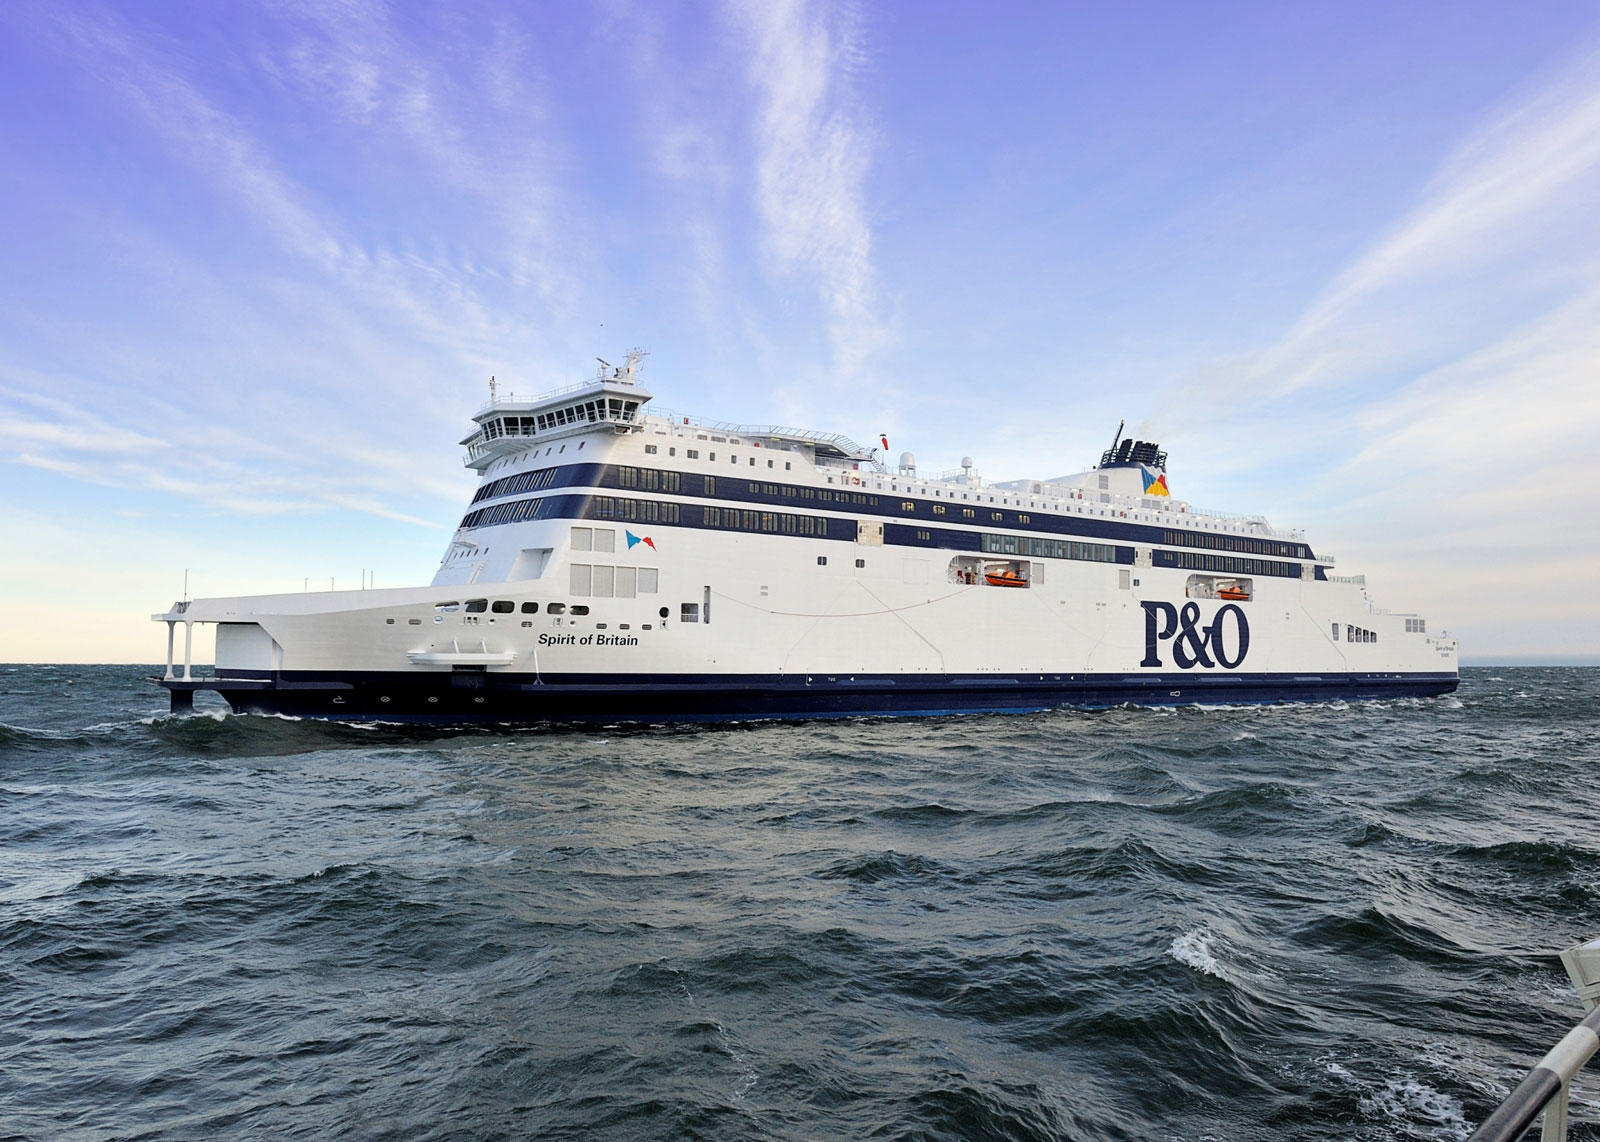 Spirit of Britain – The World's Largest Ferry Ship on Dover Strait